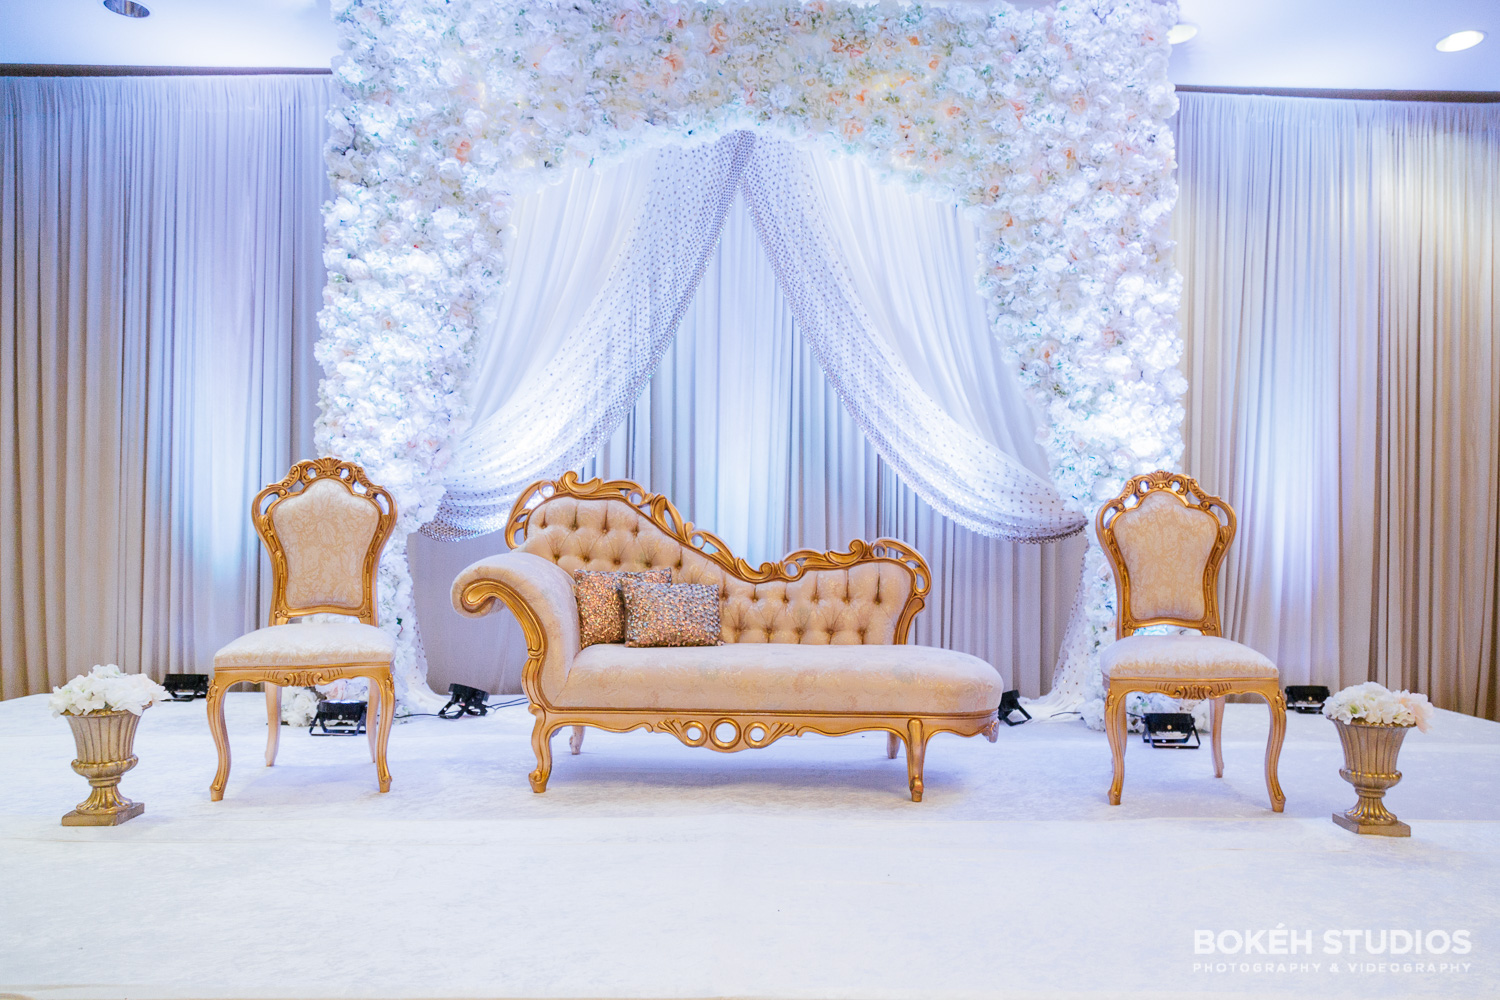 Bokeh-Studios_Muslim-Wedding_Holiday-Inn-Skokie-Chicago-Wedding_02